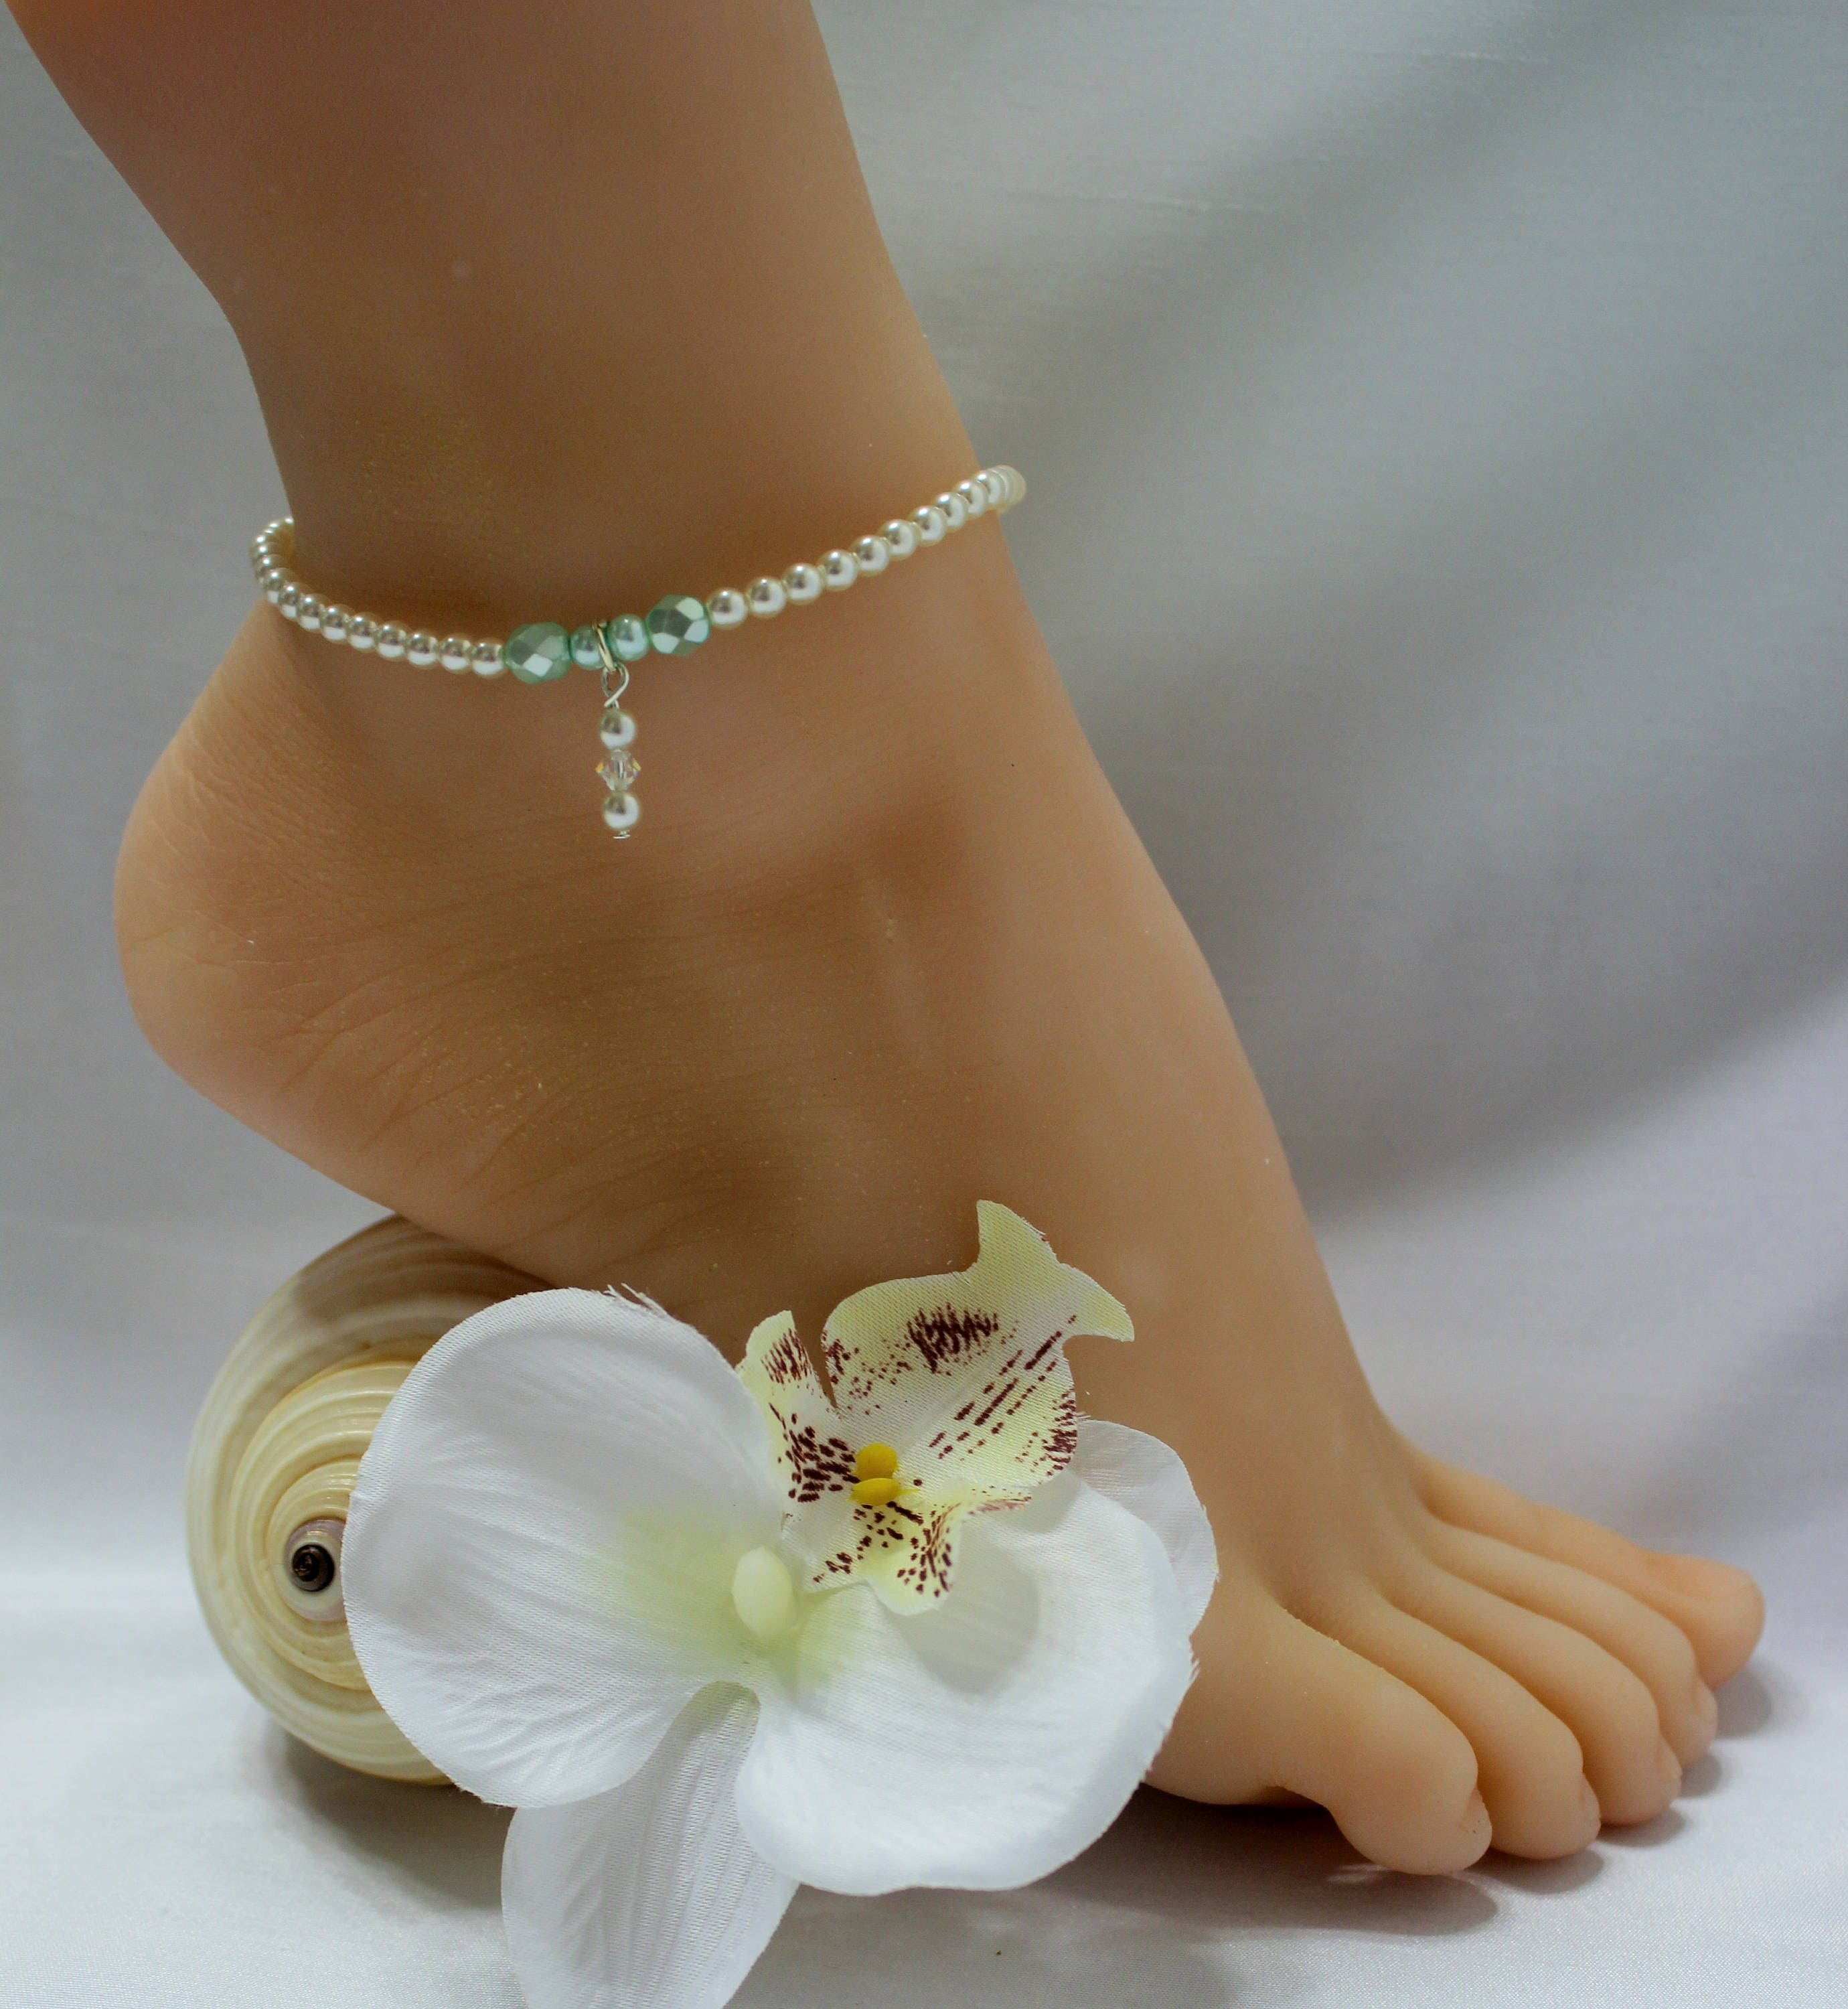 anklet anklets dp barefoot beach wedding sandals piece foot com starfish amazon jewelry bracelet ankle bienvenu